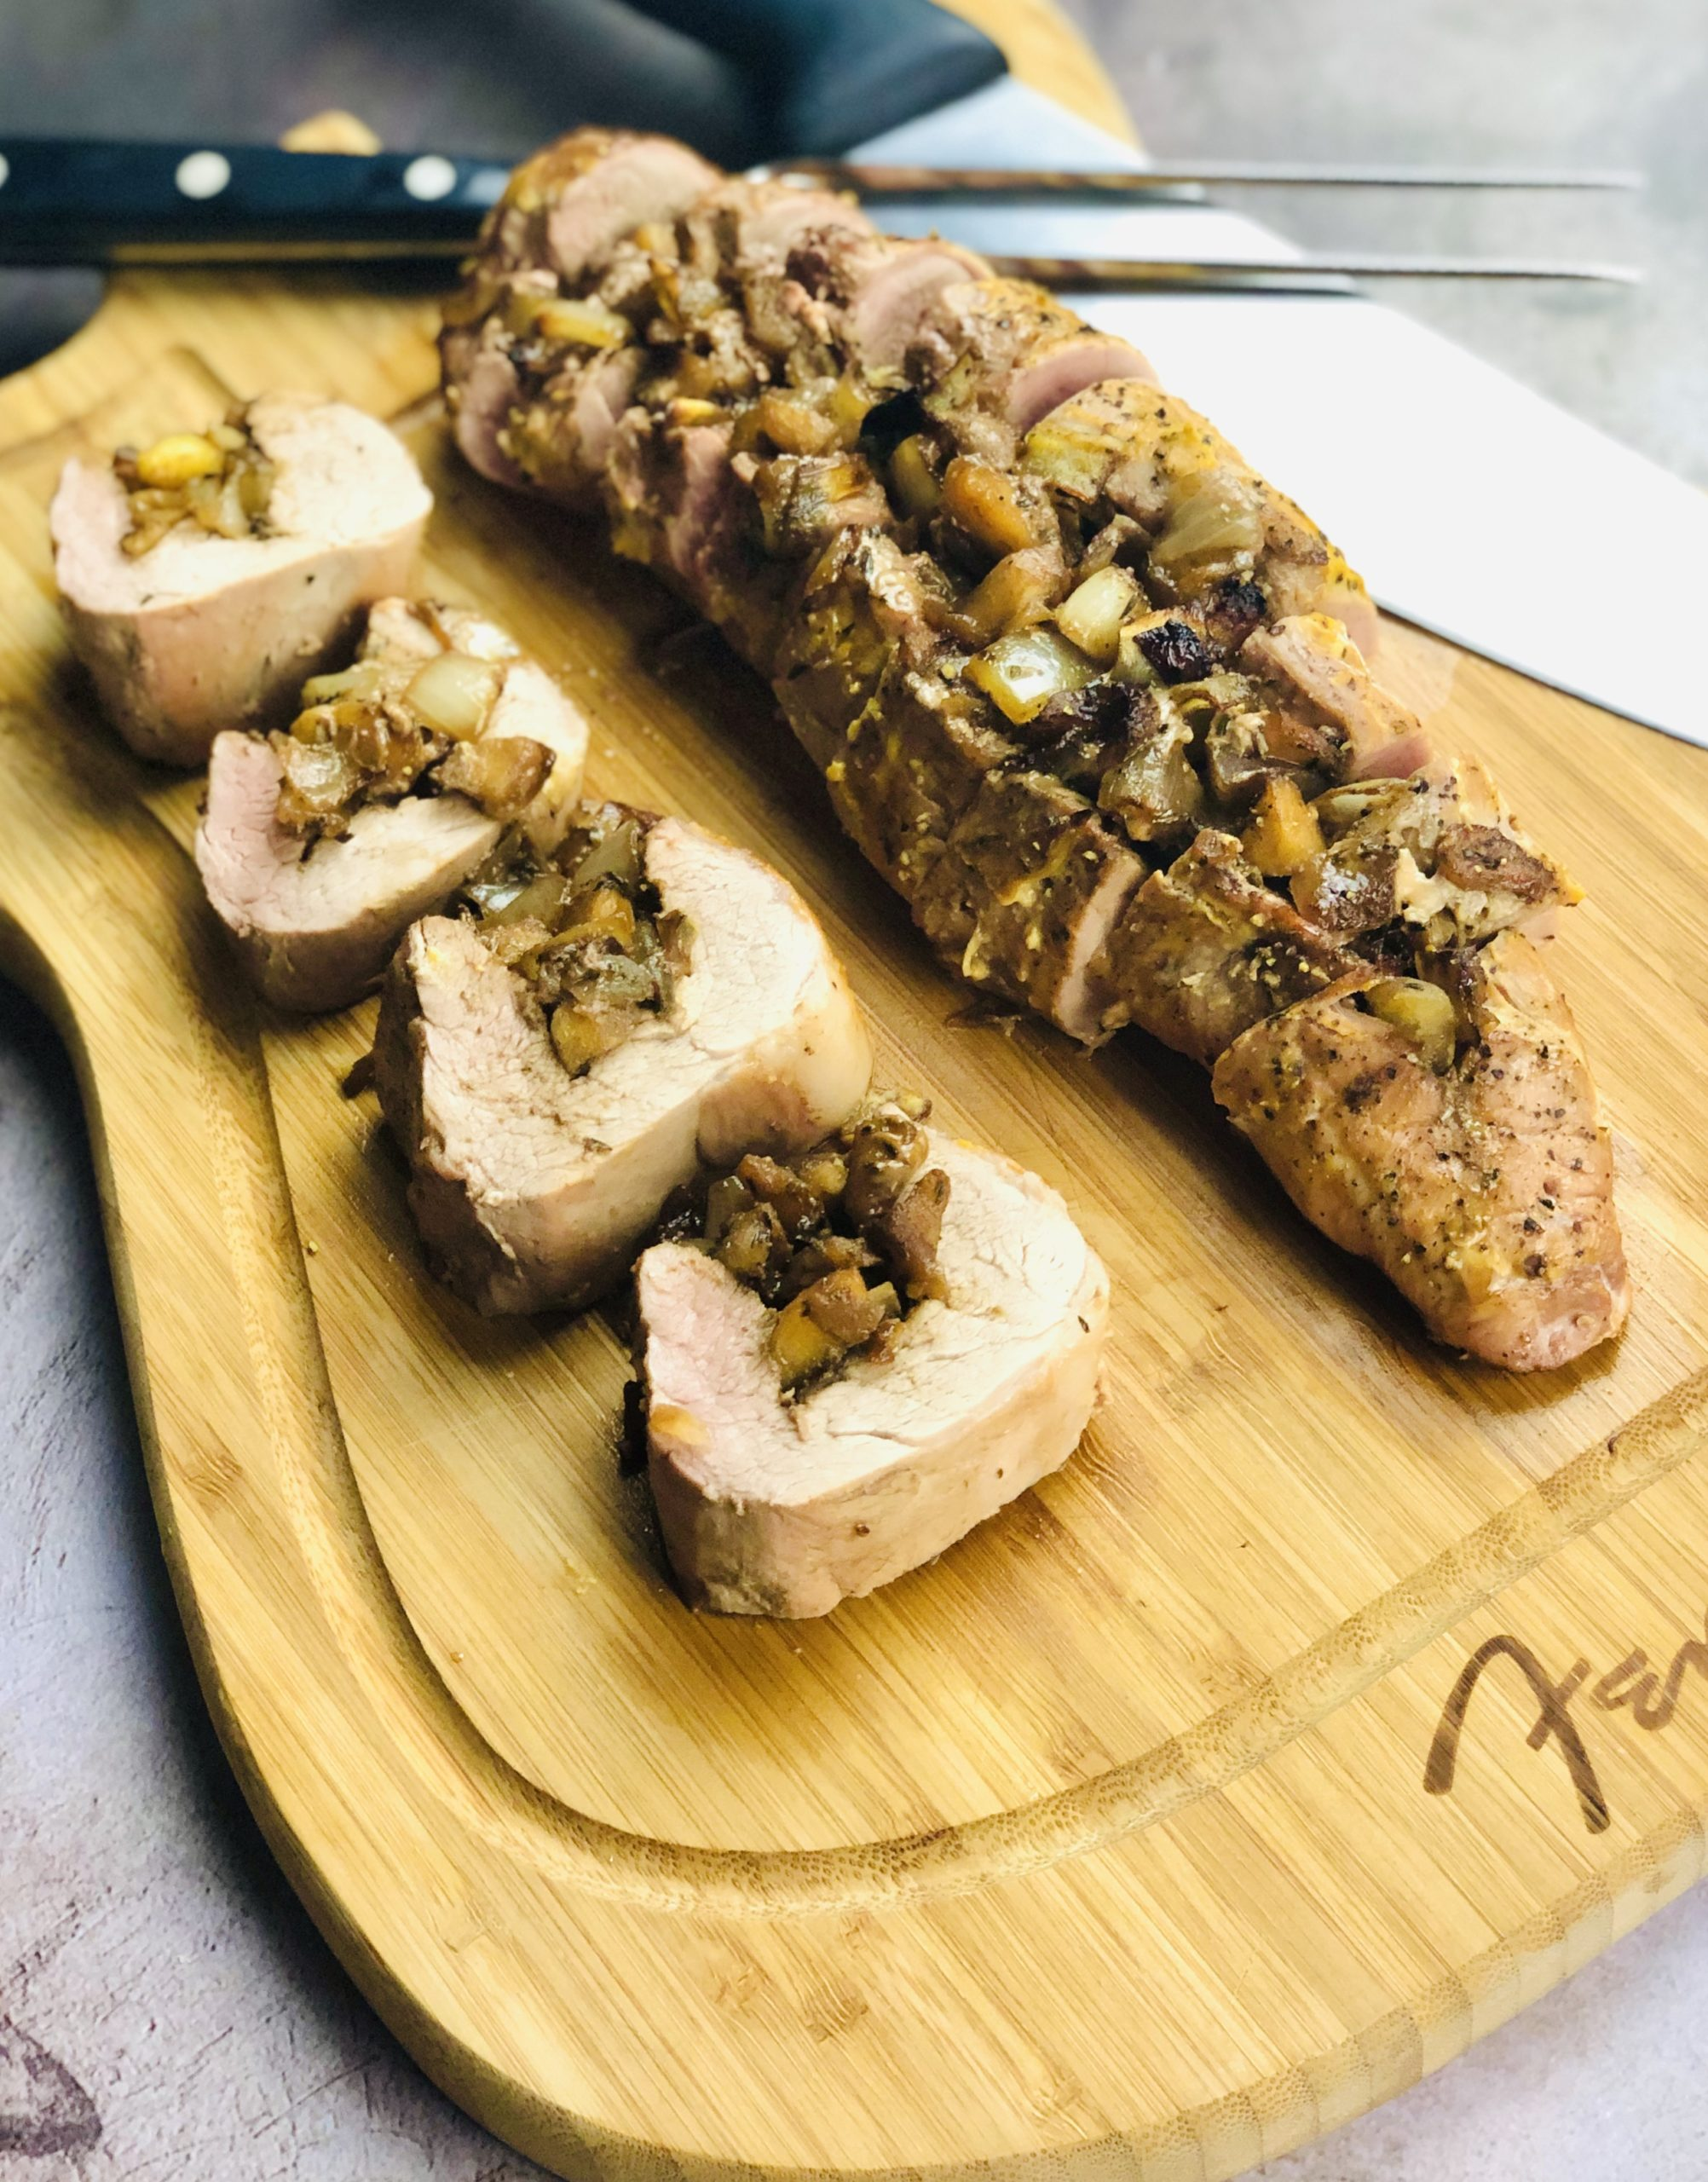 Grilled Apple and Thyme Stuffed Pork Tenderloin